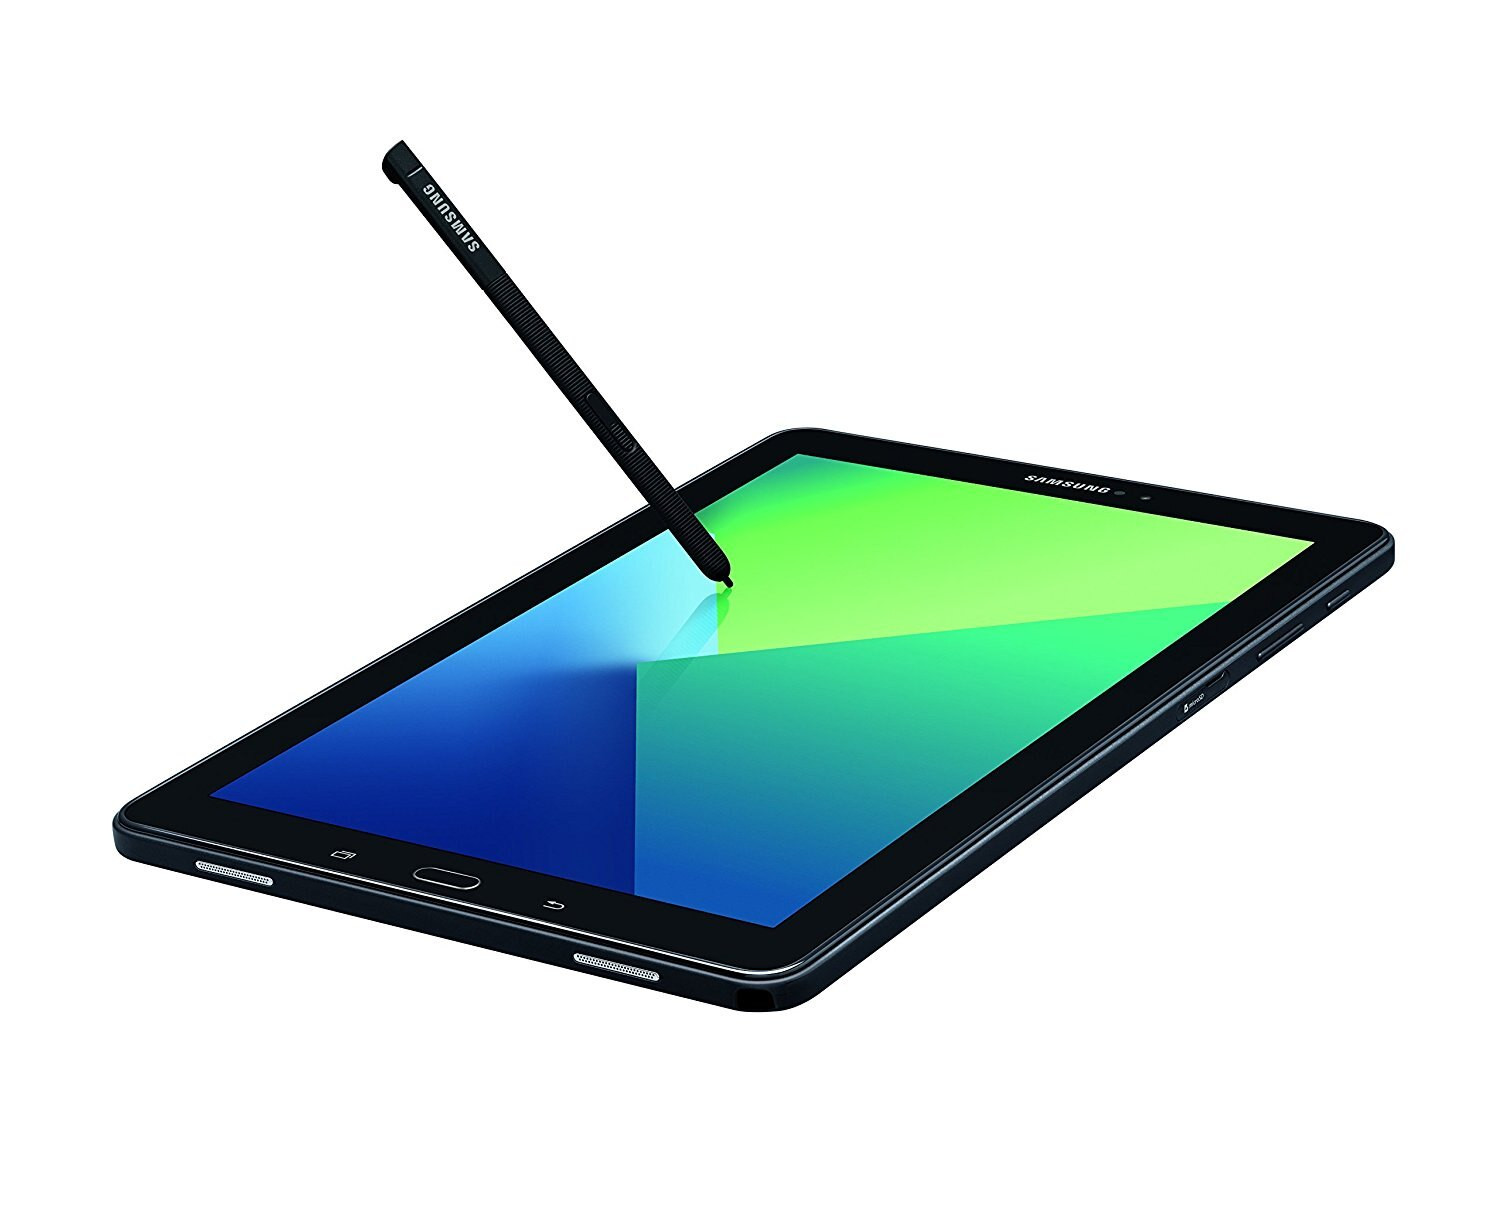 Samsung Galaxy Tab A SM-P580NZKAXAR 10.1-Inch 16 GB, Tablet with S Pen (Black) 0